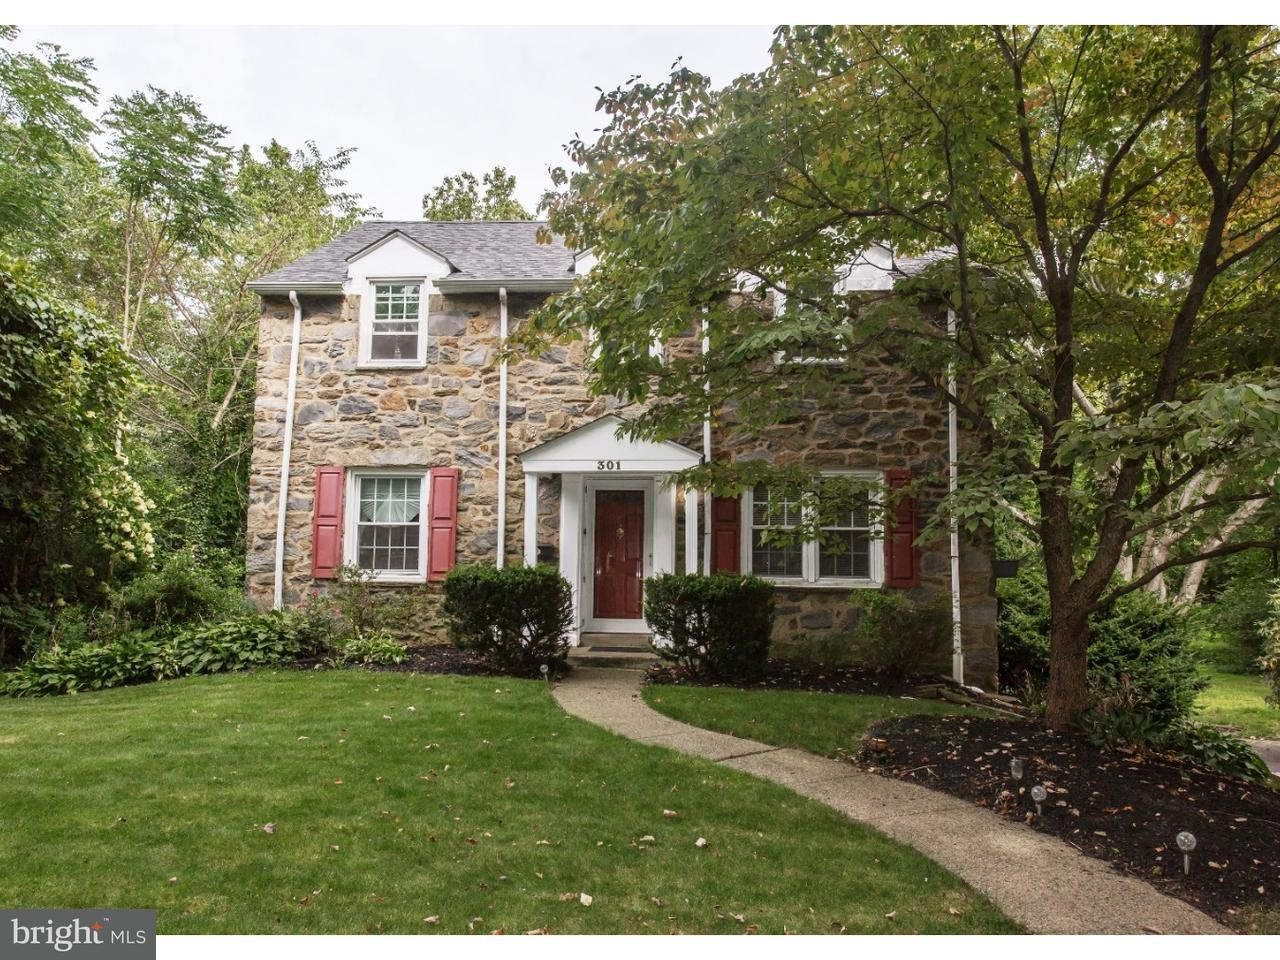 Single Family Home for Sale at 301 RIVERVIEW Road Swarthmore, Pennsylvania 19081 United States